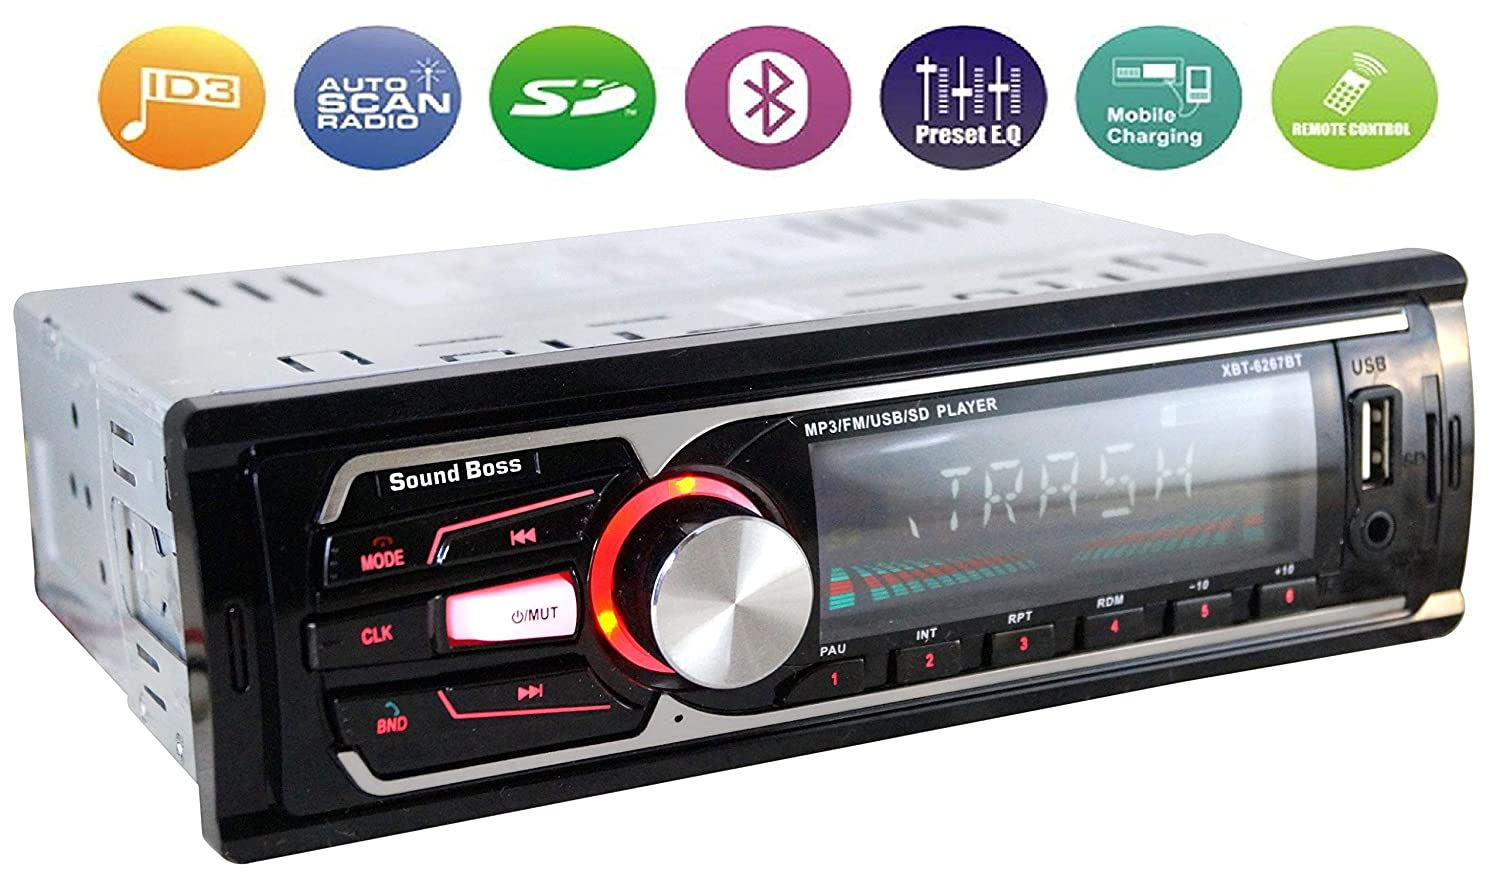 Sound Boss Sb 49 Car Stereo With Bluetooth Amazonin Electronics